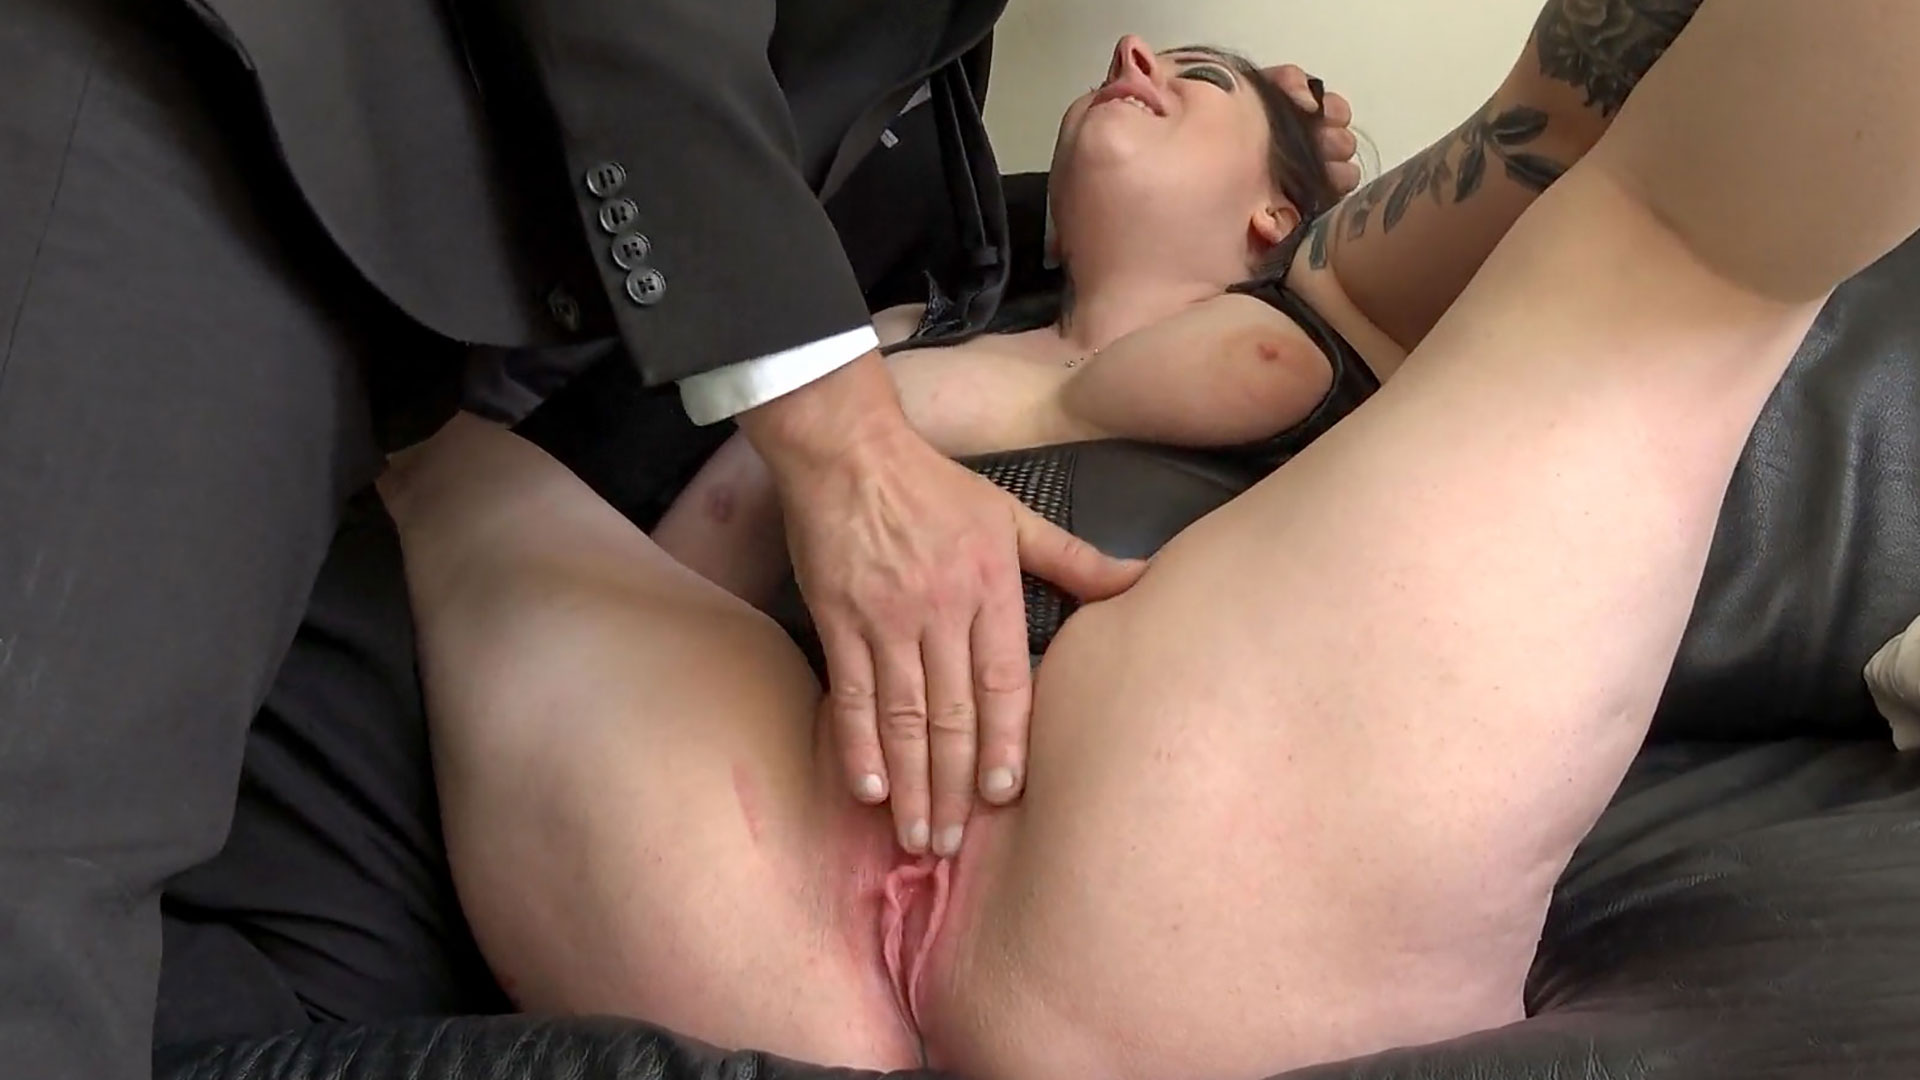 SubSlut Elouise Lust: well stoked, cums fast